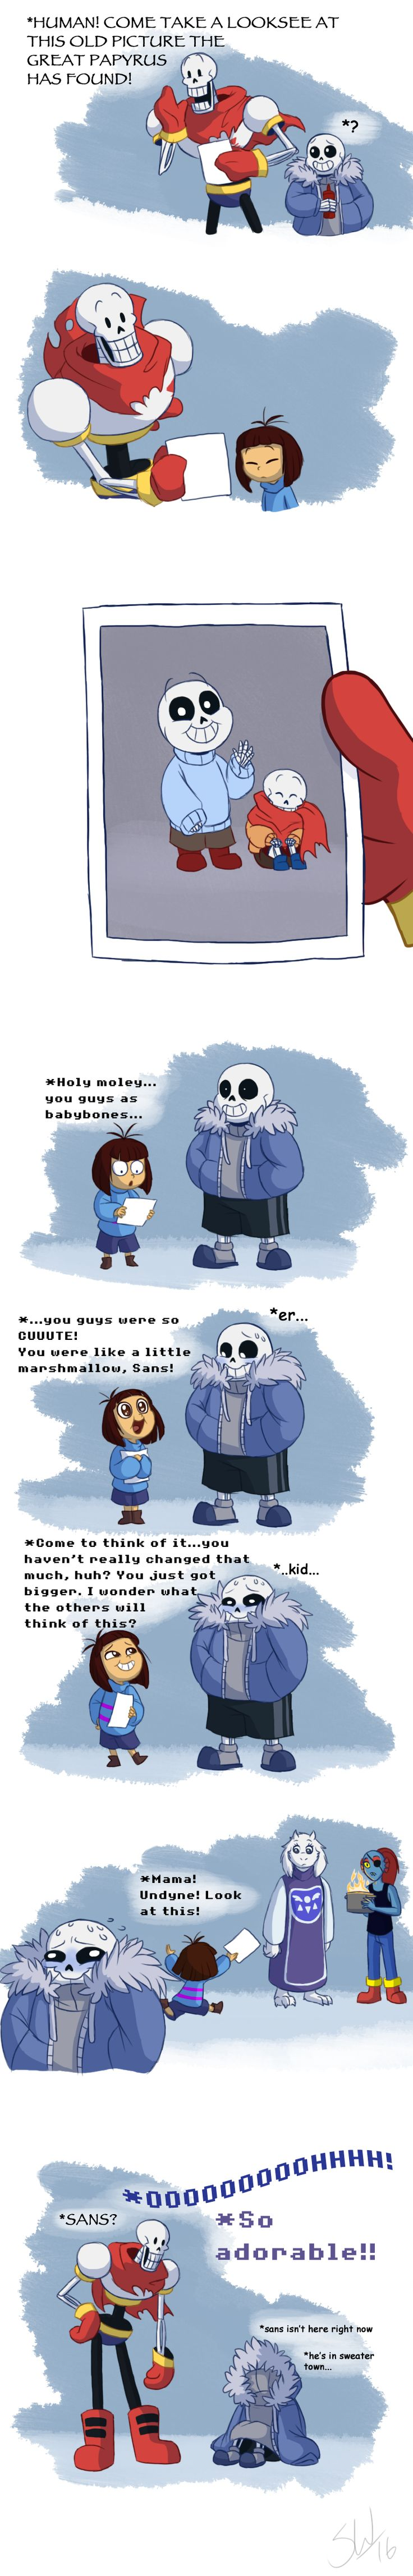 Papyrus, Sans, and Frisk - comic